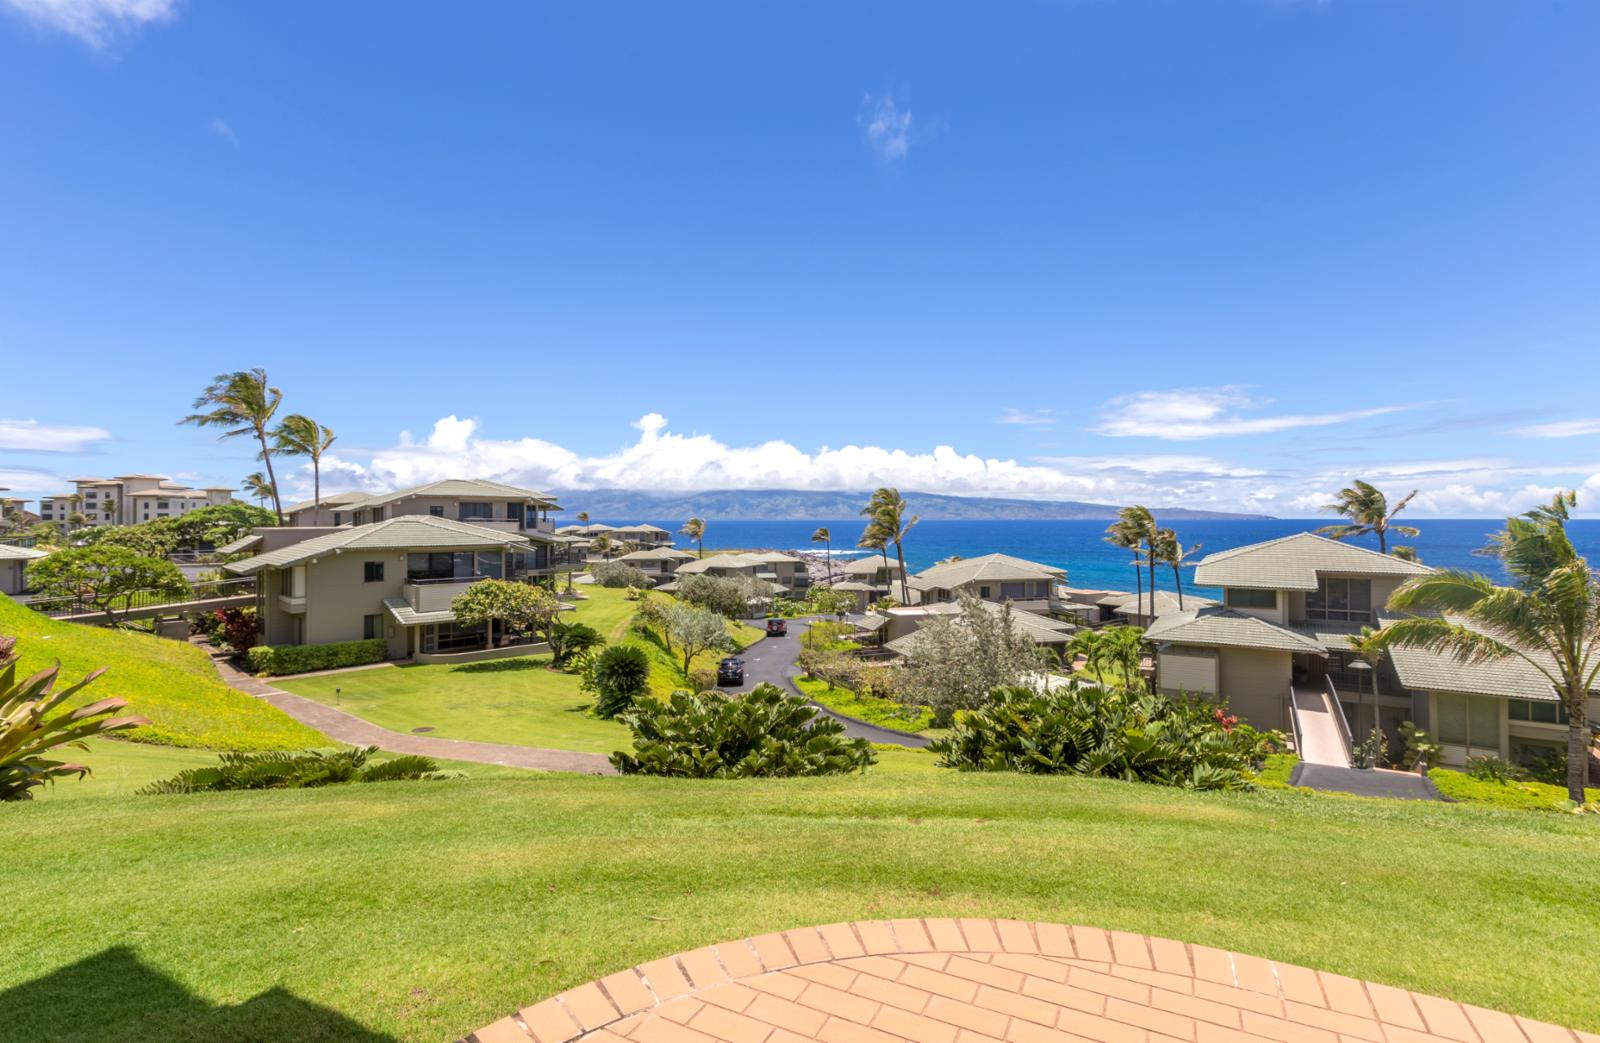 180 degree ocean views from 2 of the 3 private ground floor lanais